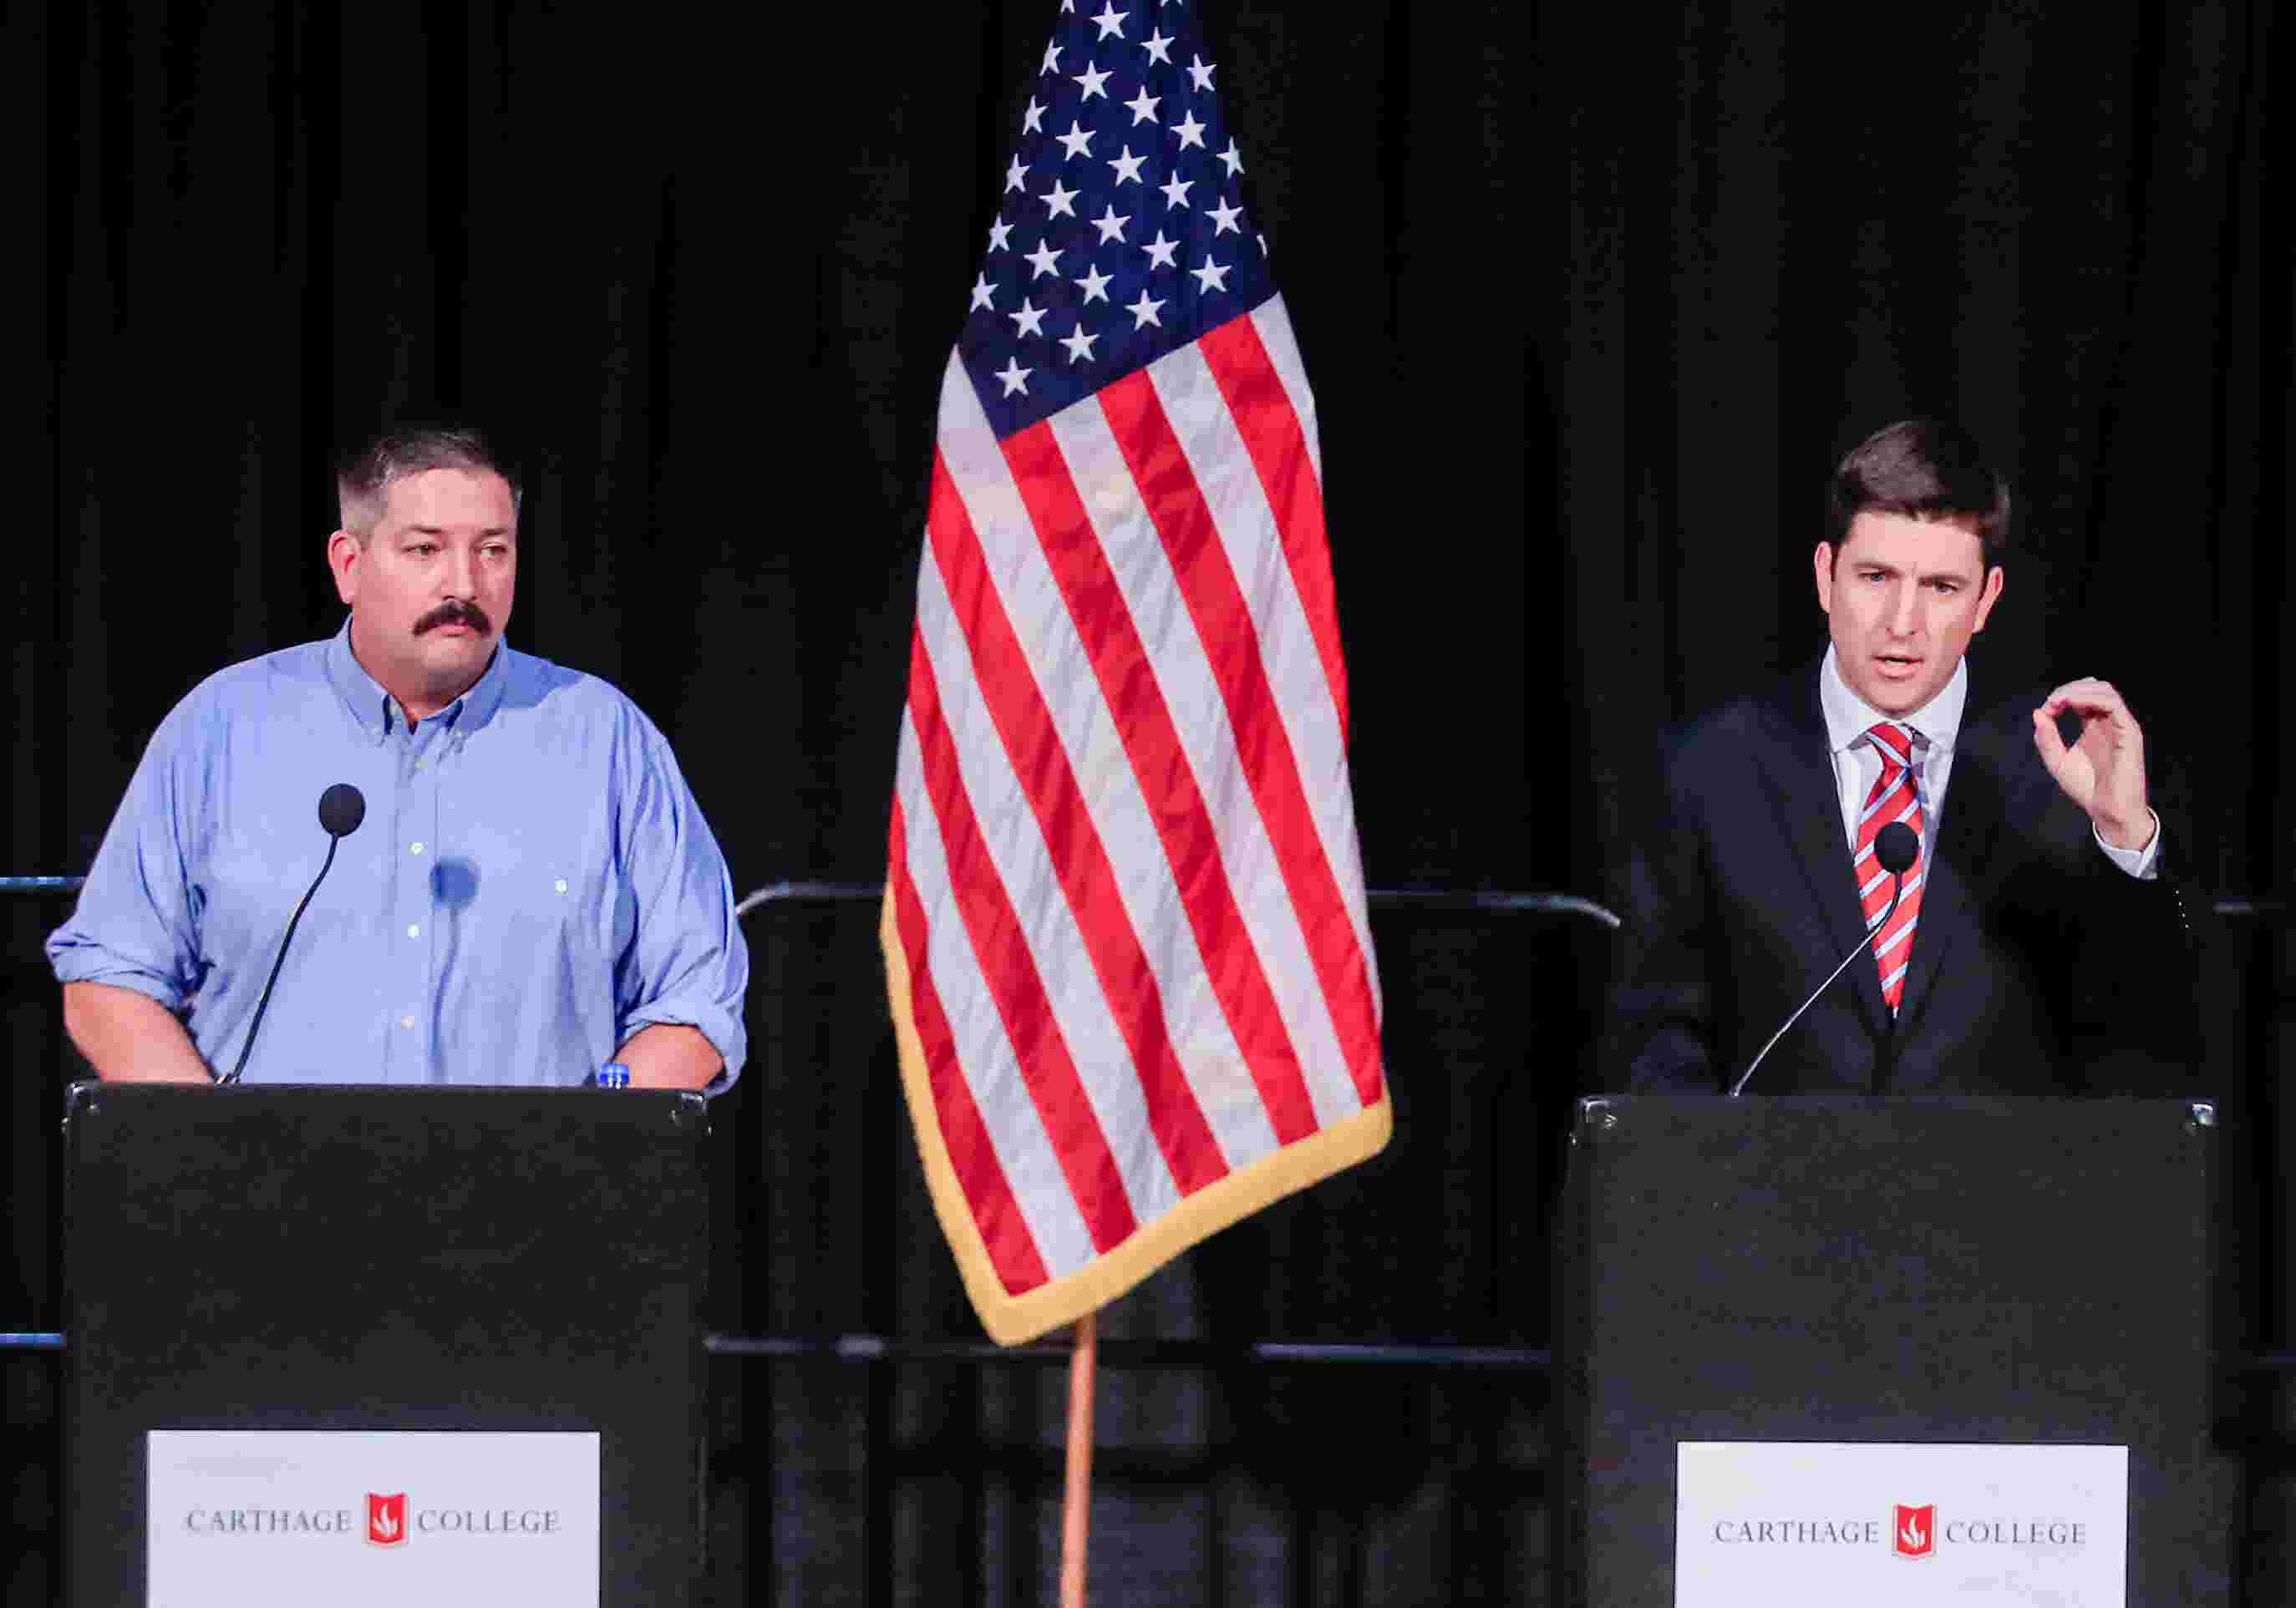 The 1st Congressional District debate between Randy Bryce and Bryan Steil  in four minutes